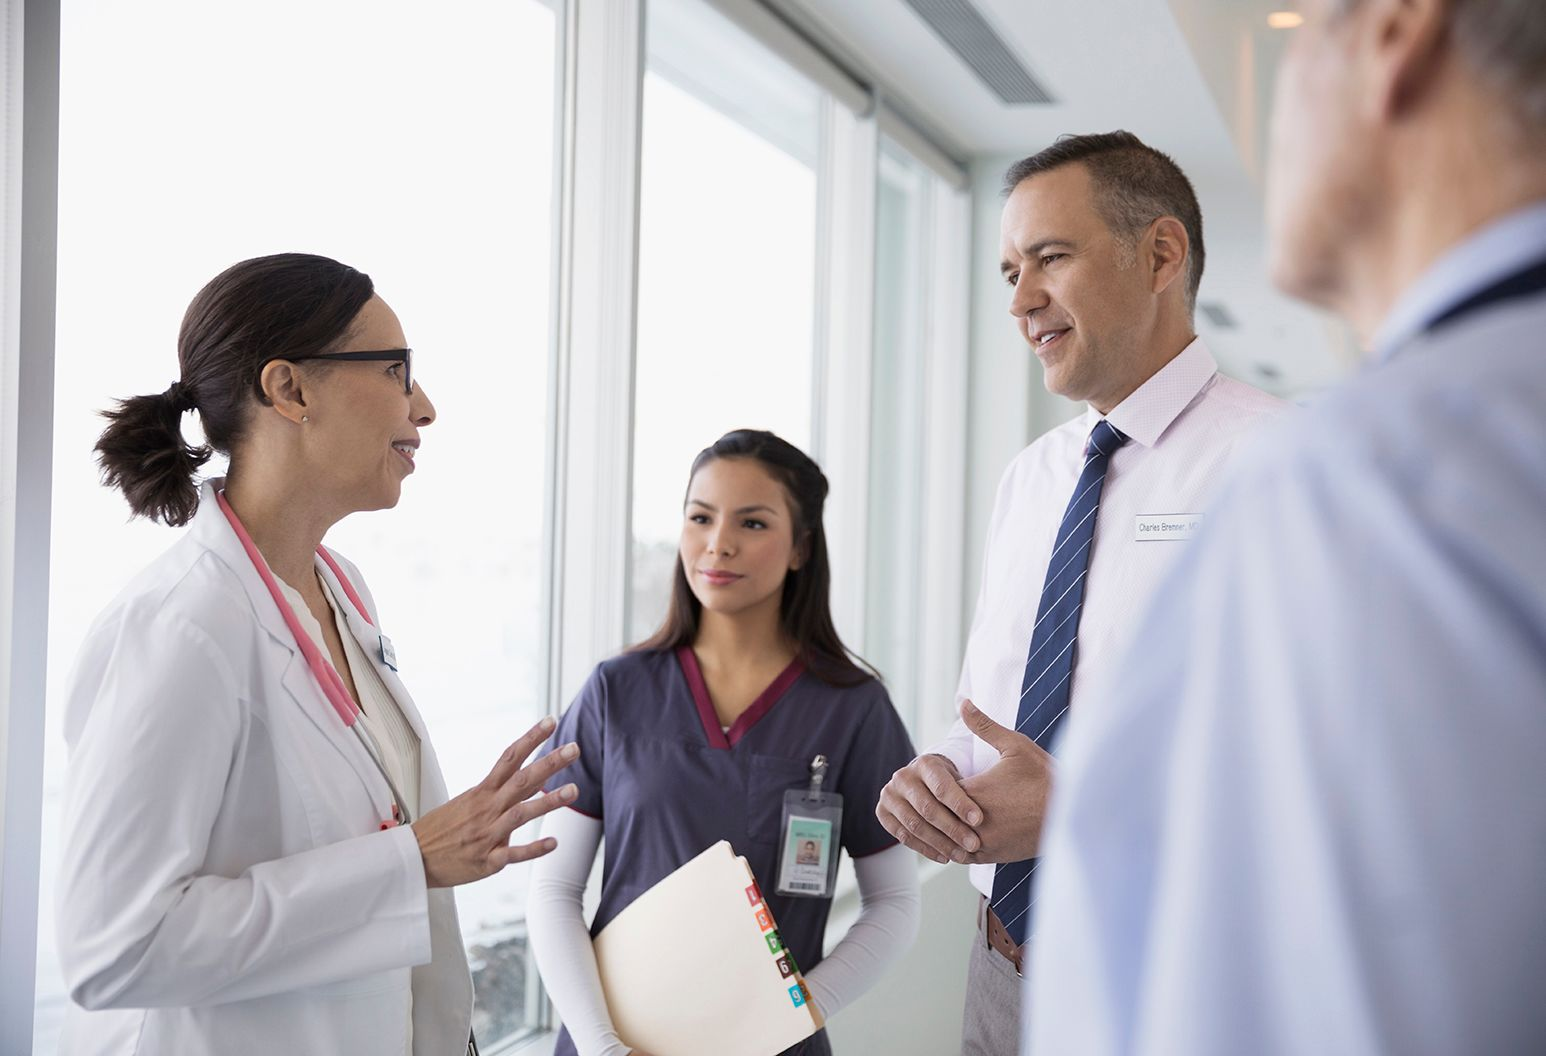 Two doctors conversing as a nurse joins in to hand one of the doctors a patients file